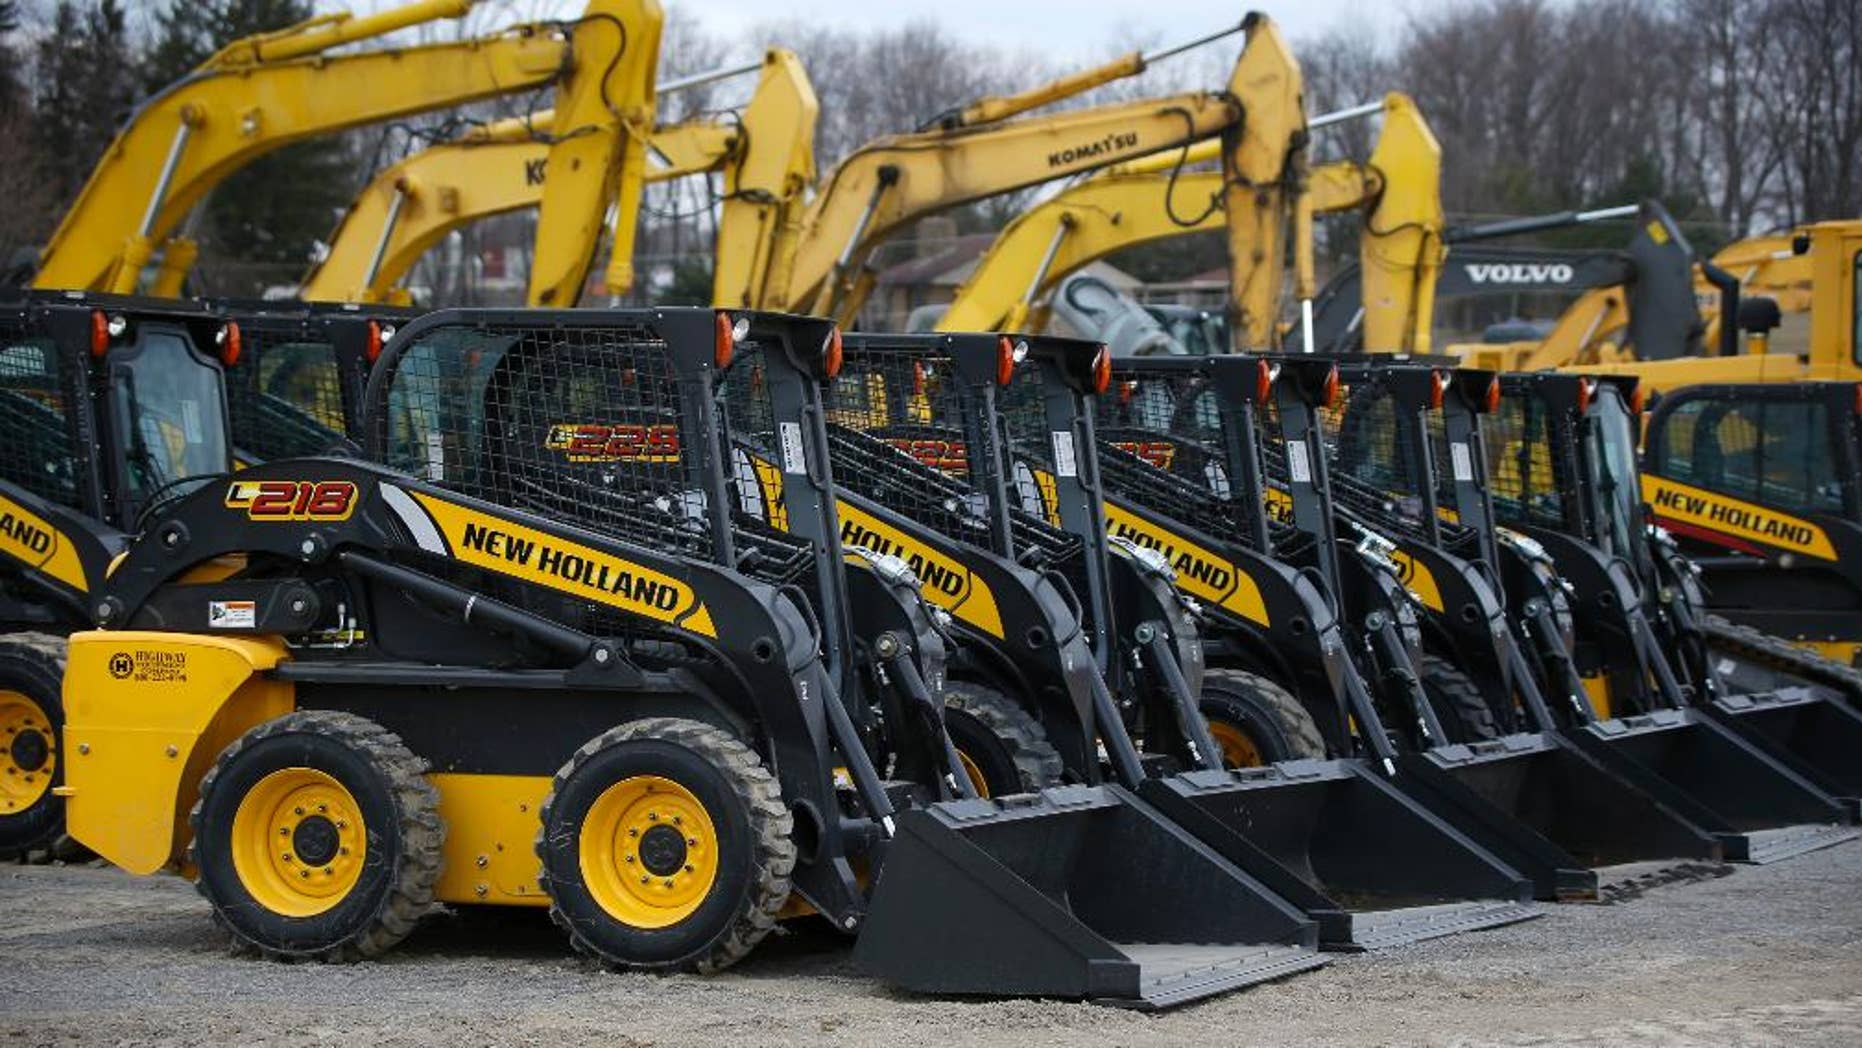 In this Friday, March 28, 2014 photo, earth-moving and construction equipment is stored on a lot at the Highway Equipment Company in Zelienople, Pa. The Commerce Department releases business inventories for March on Tuesday, May 13, 2014. (AP Photo/Keith Srakocic)